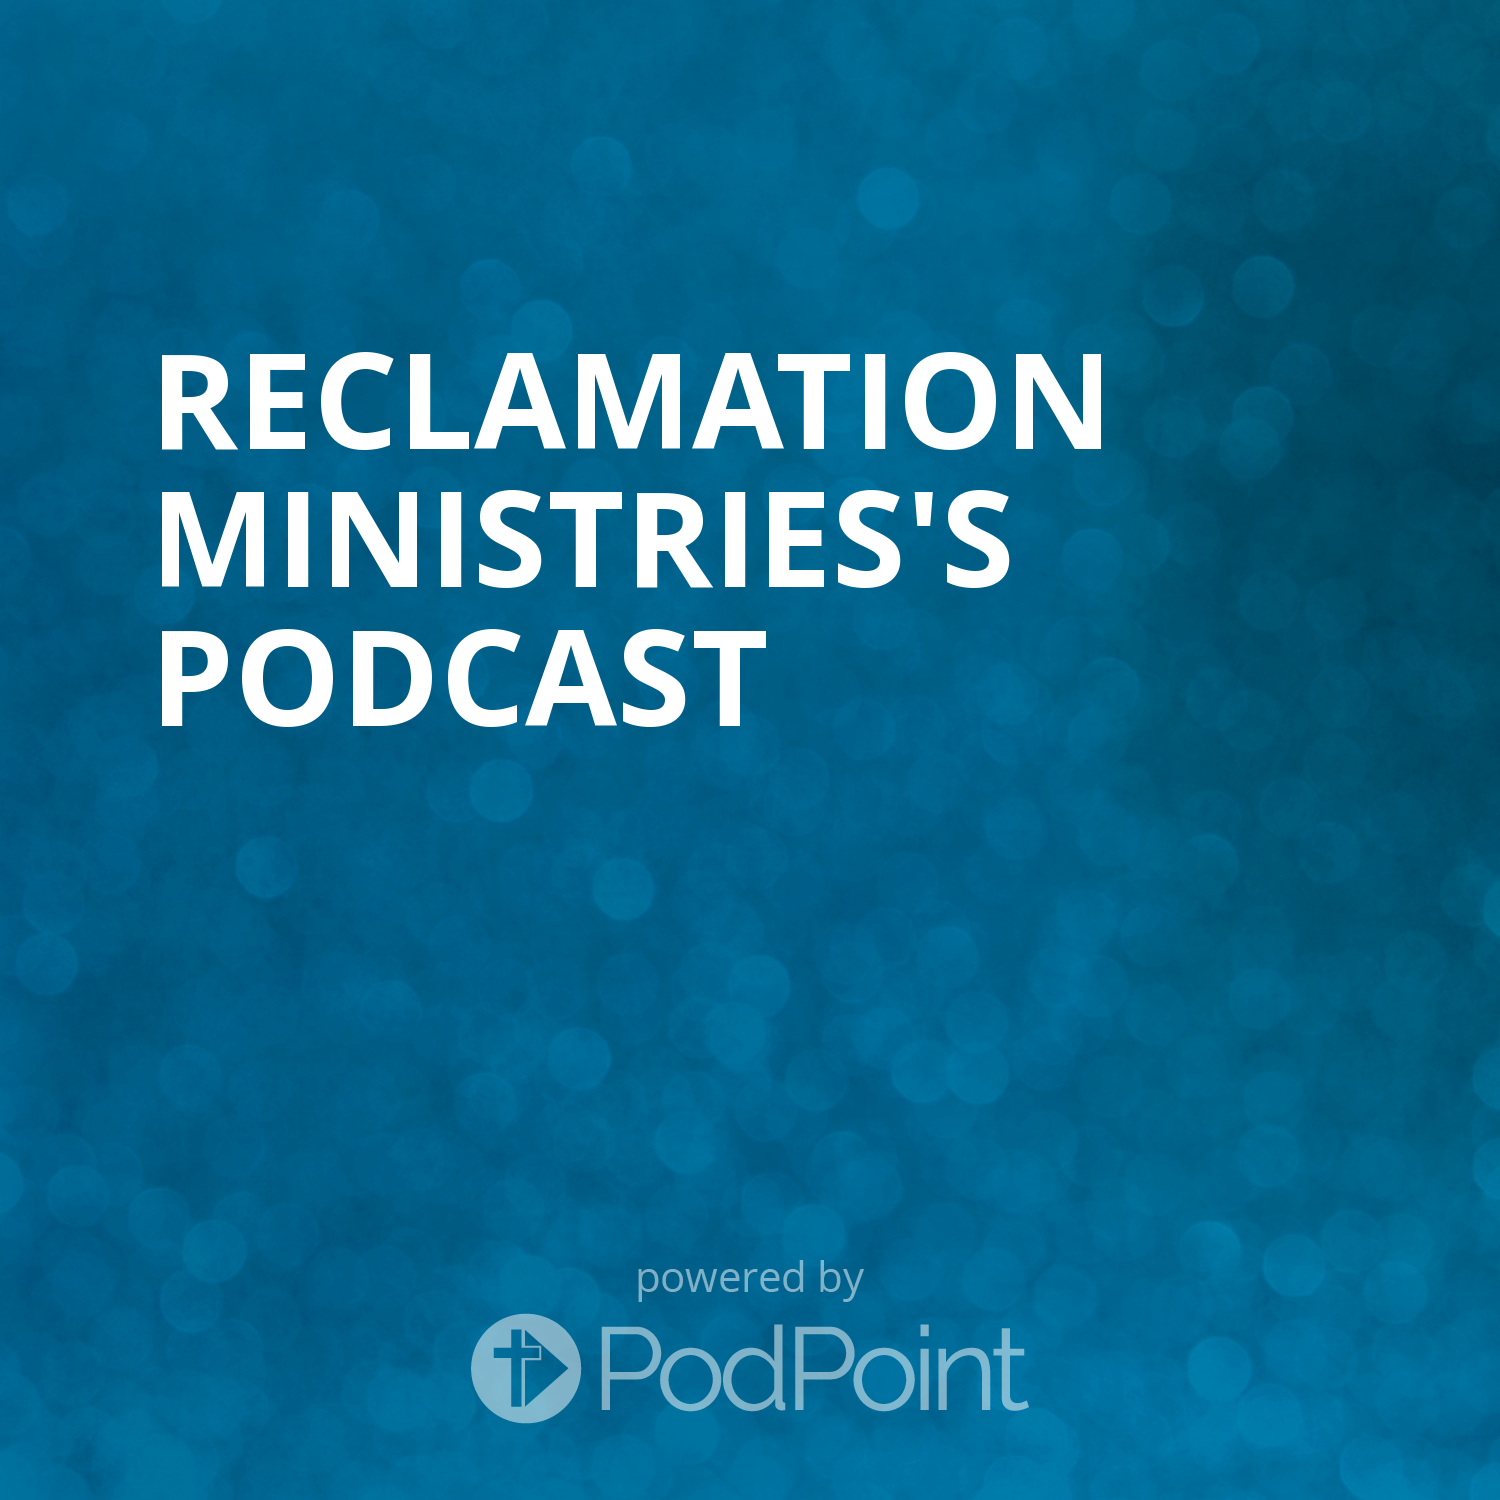 Reclamation Ministries's Podcast